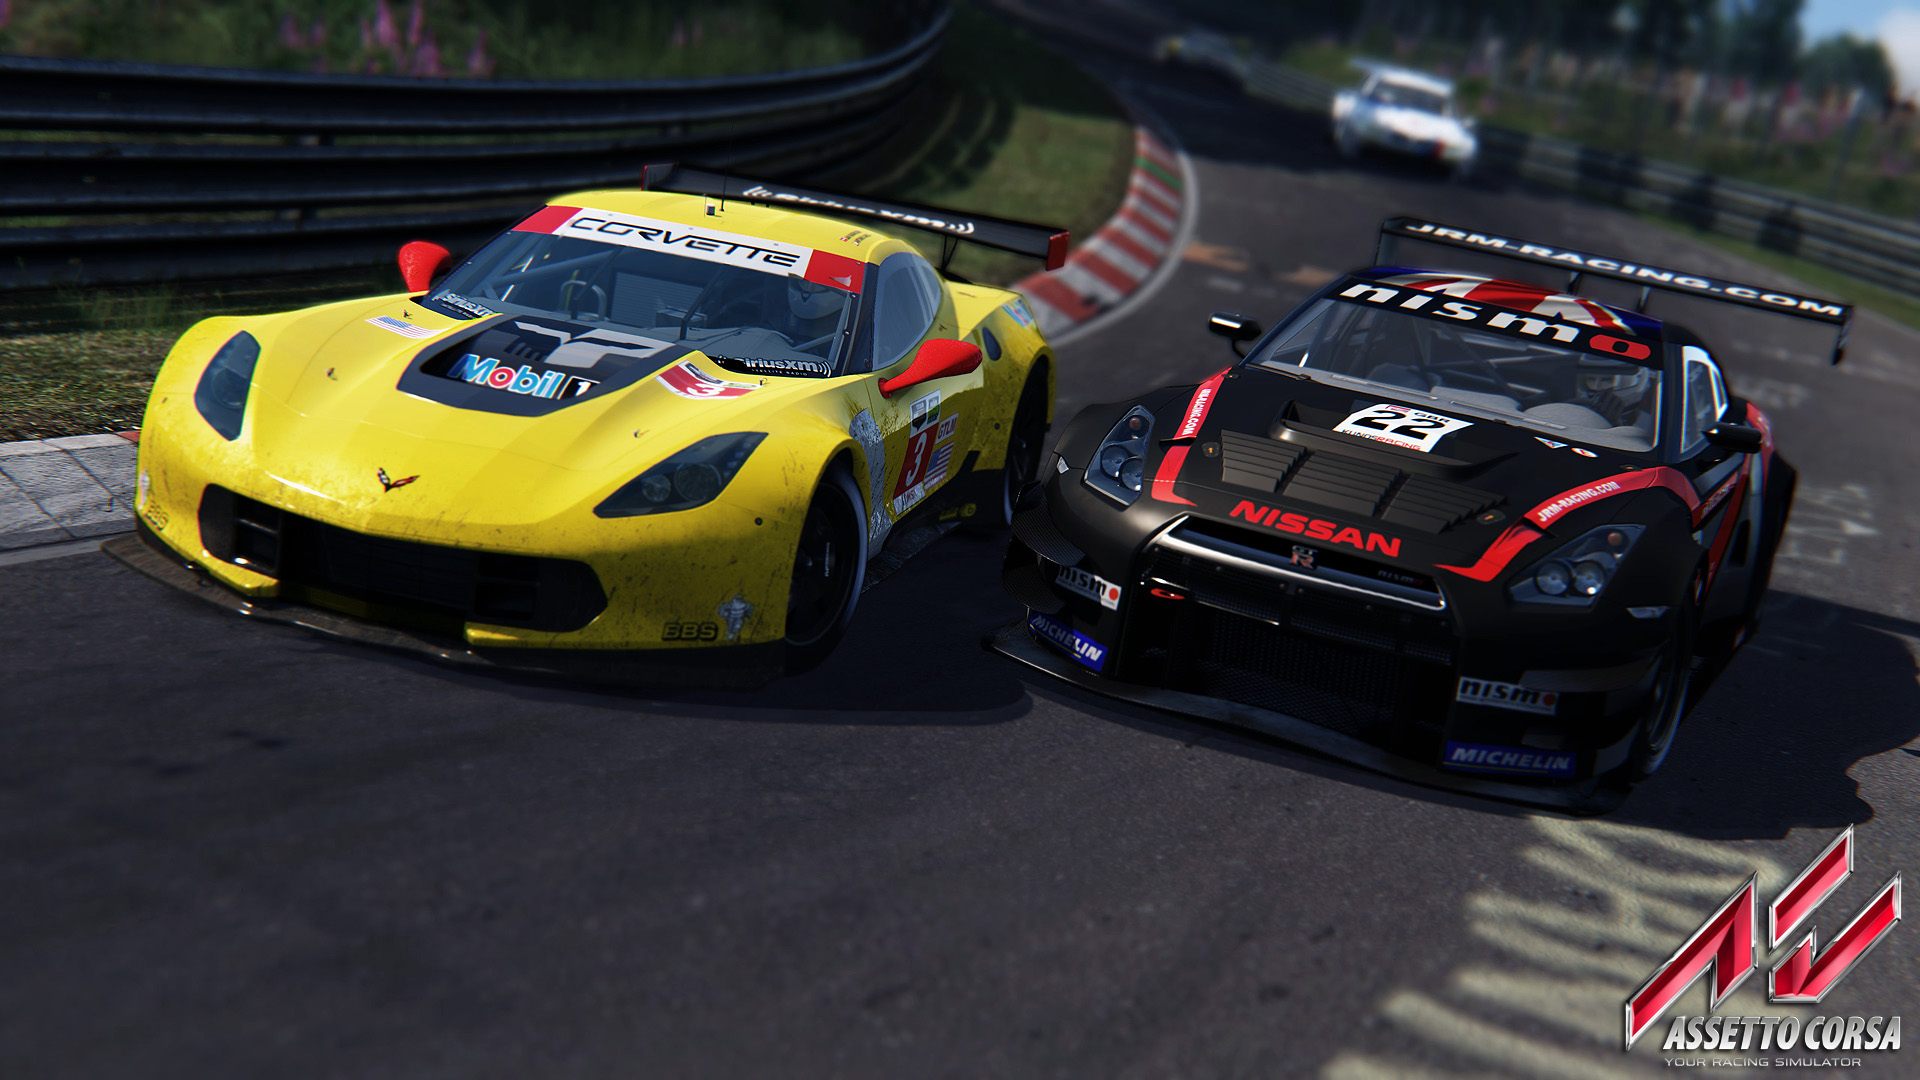 10 Best Car Racing Games For Pc In